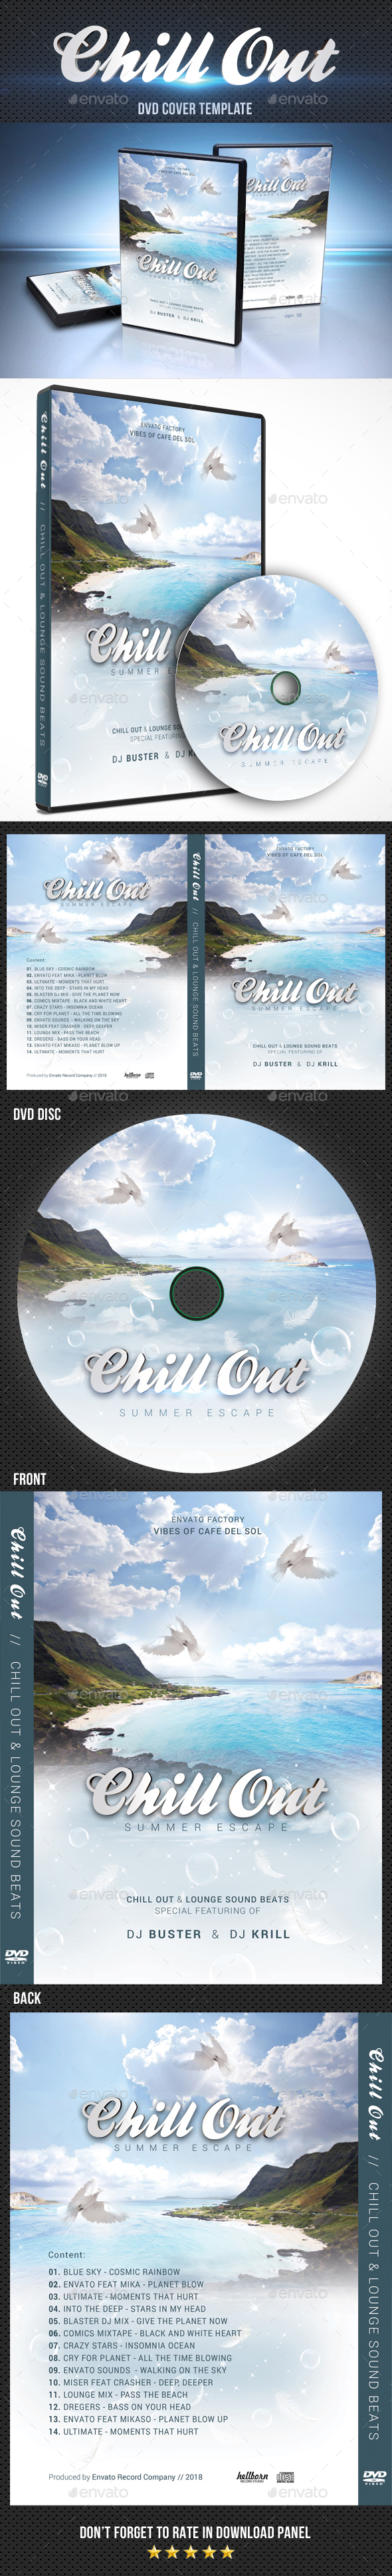 Chill Out DVD Cover Template - CD & DVD Artwork Print Templates